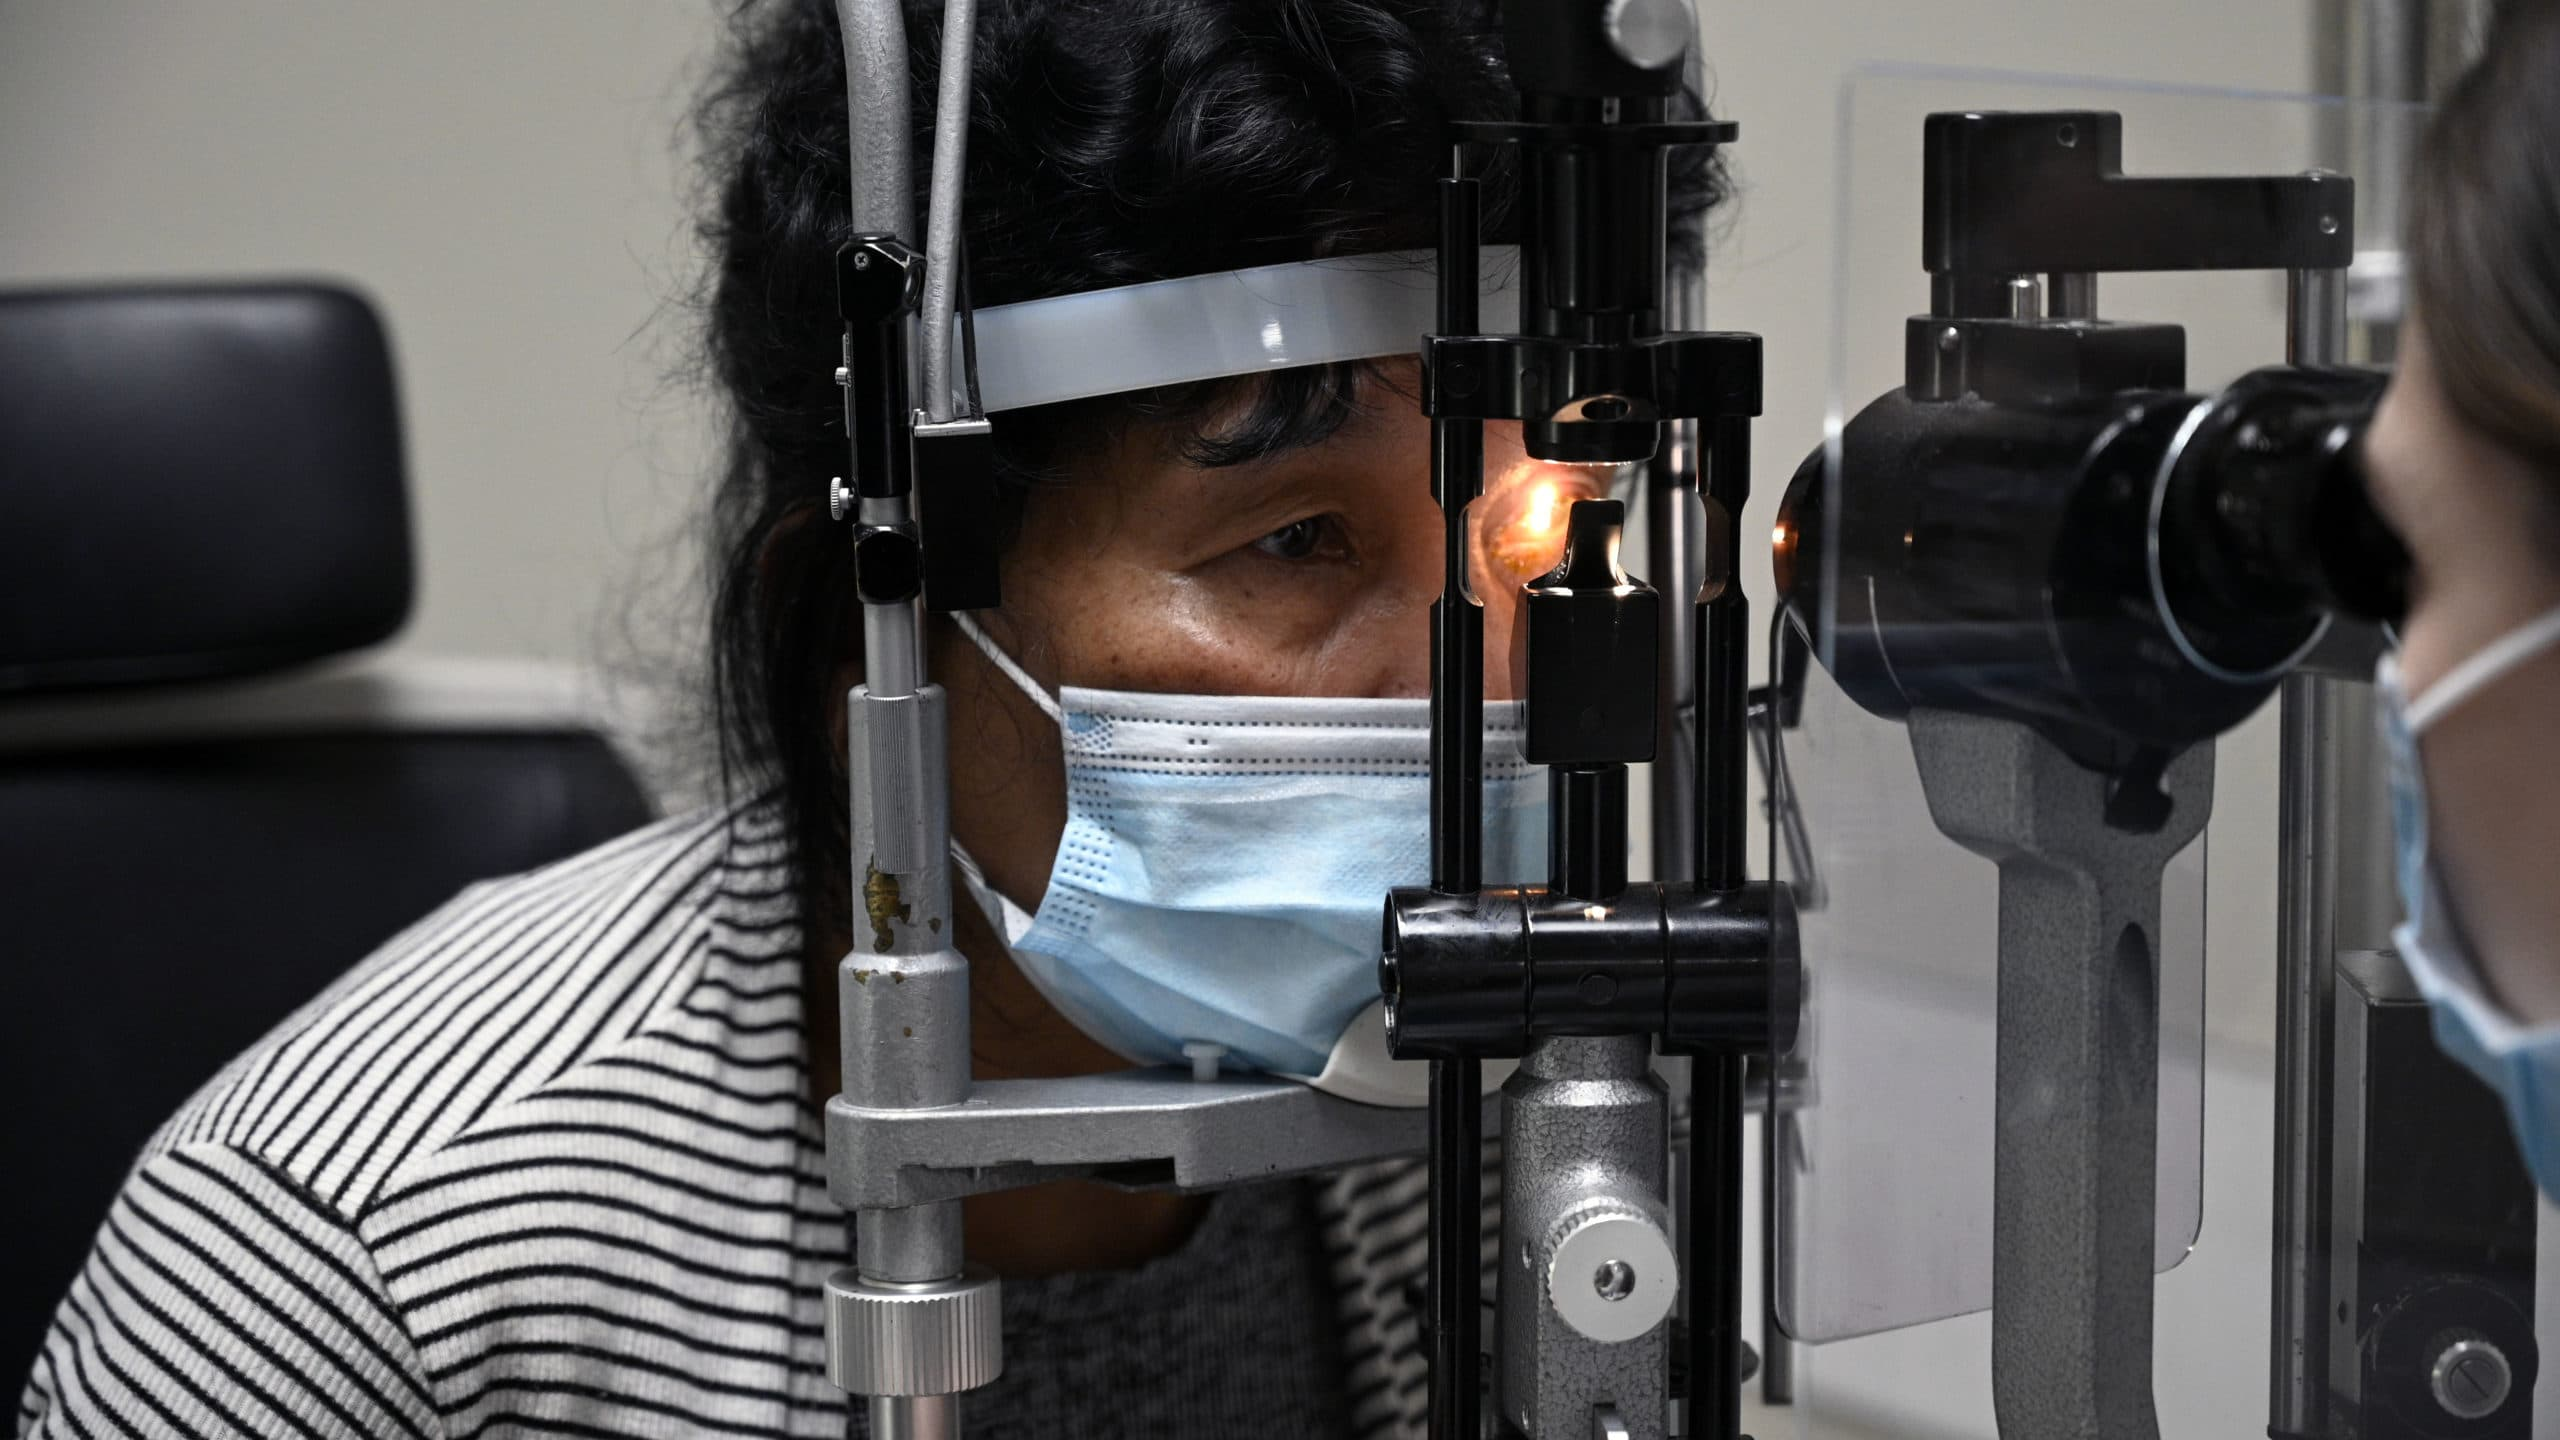 Libos Gold, 60, has her left eye examined by Carina Sanvicente, M.D., the day after her cataract surgery.